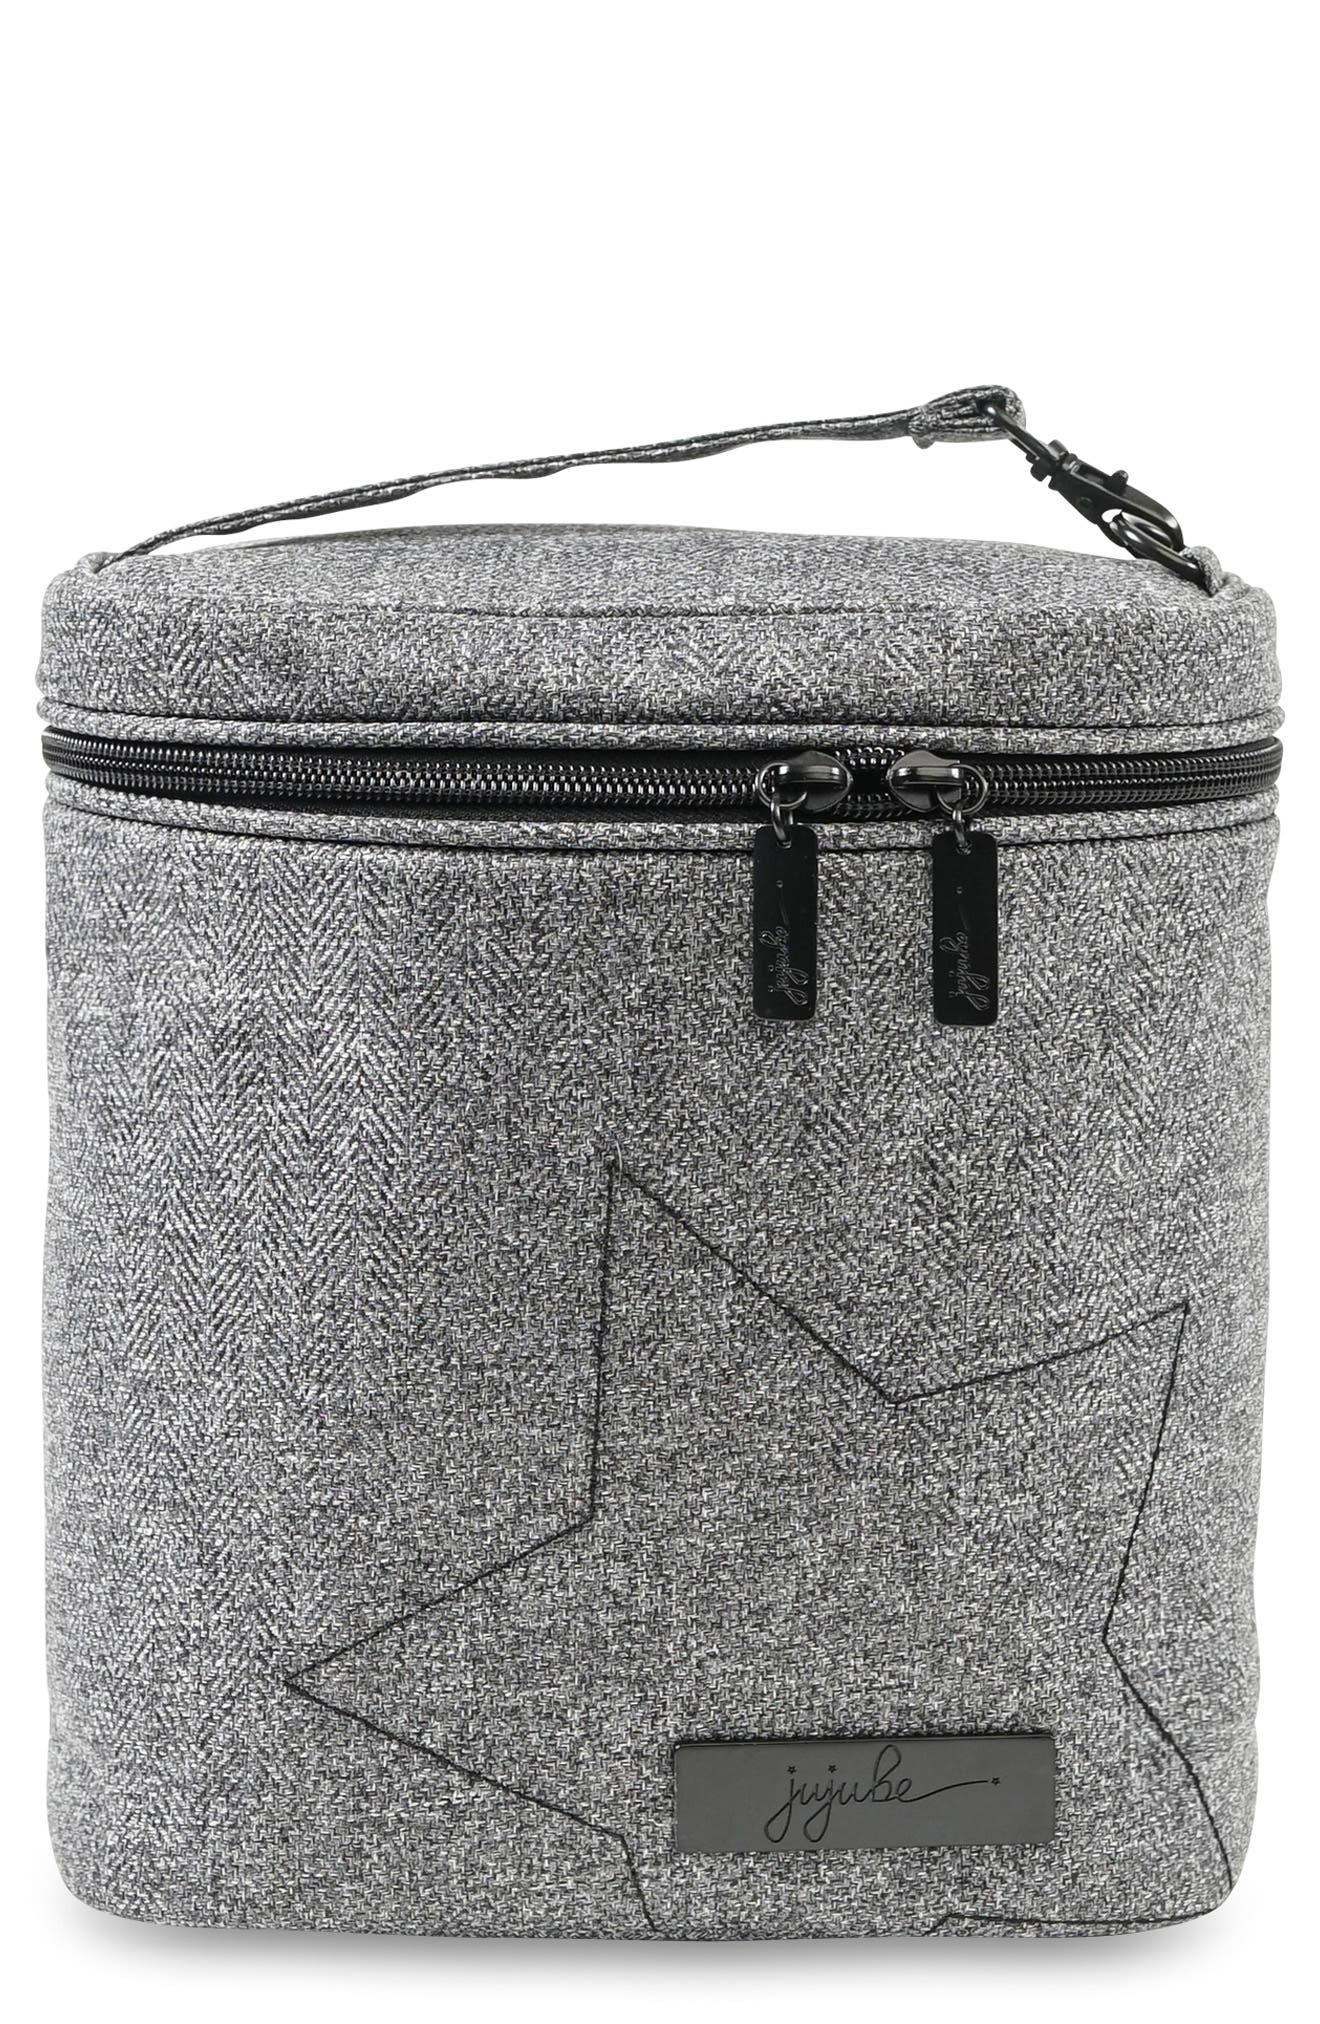 'Fuel Cell - Onyx Collection' Lunch Bag,                         Main,                         color, GRAY MATTER